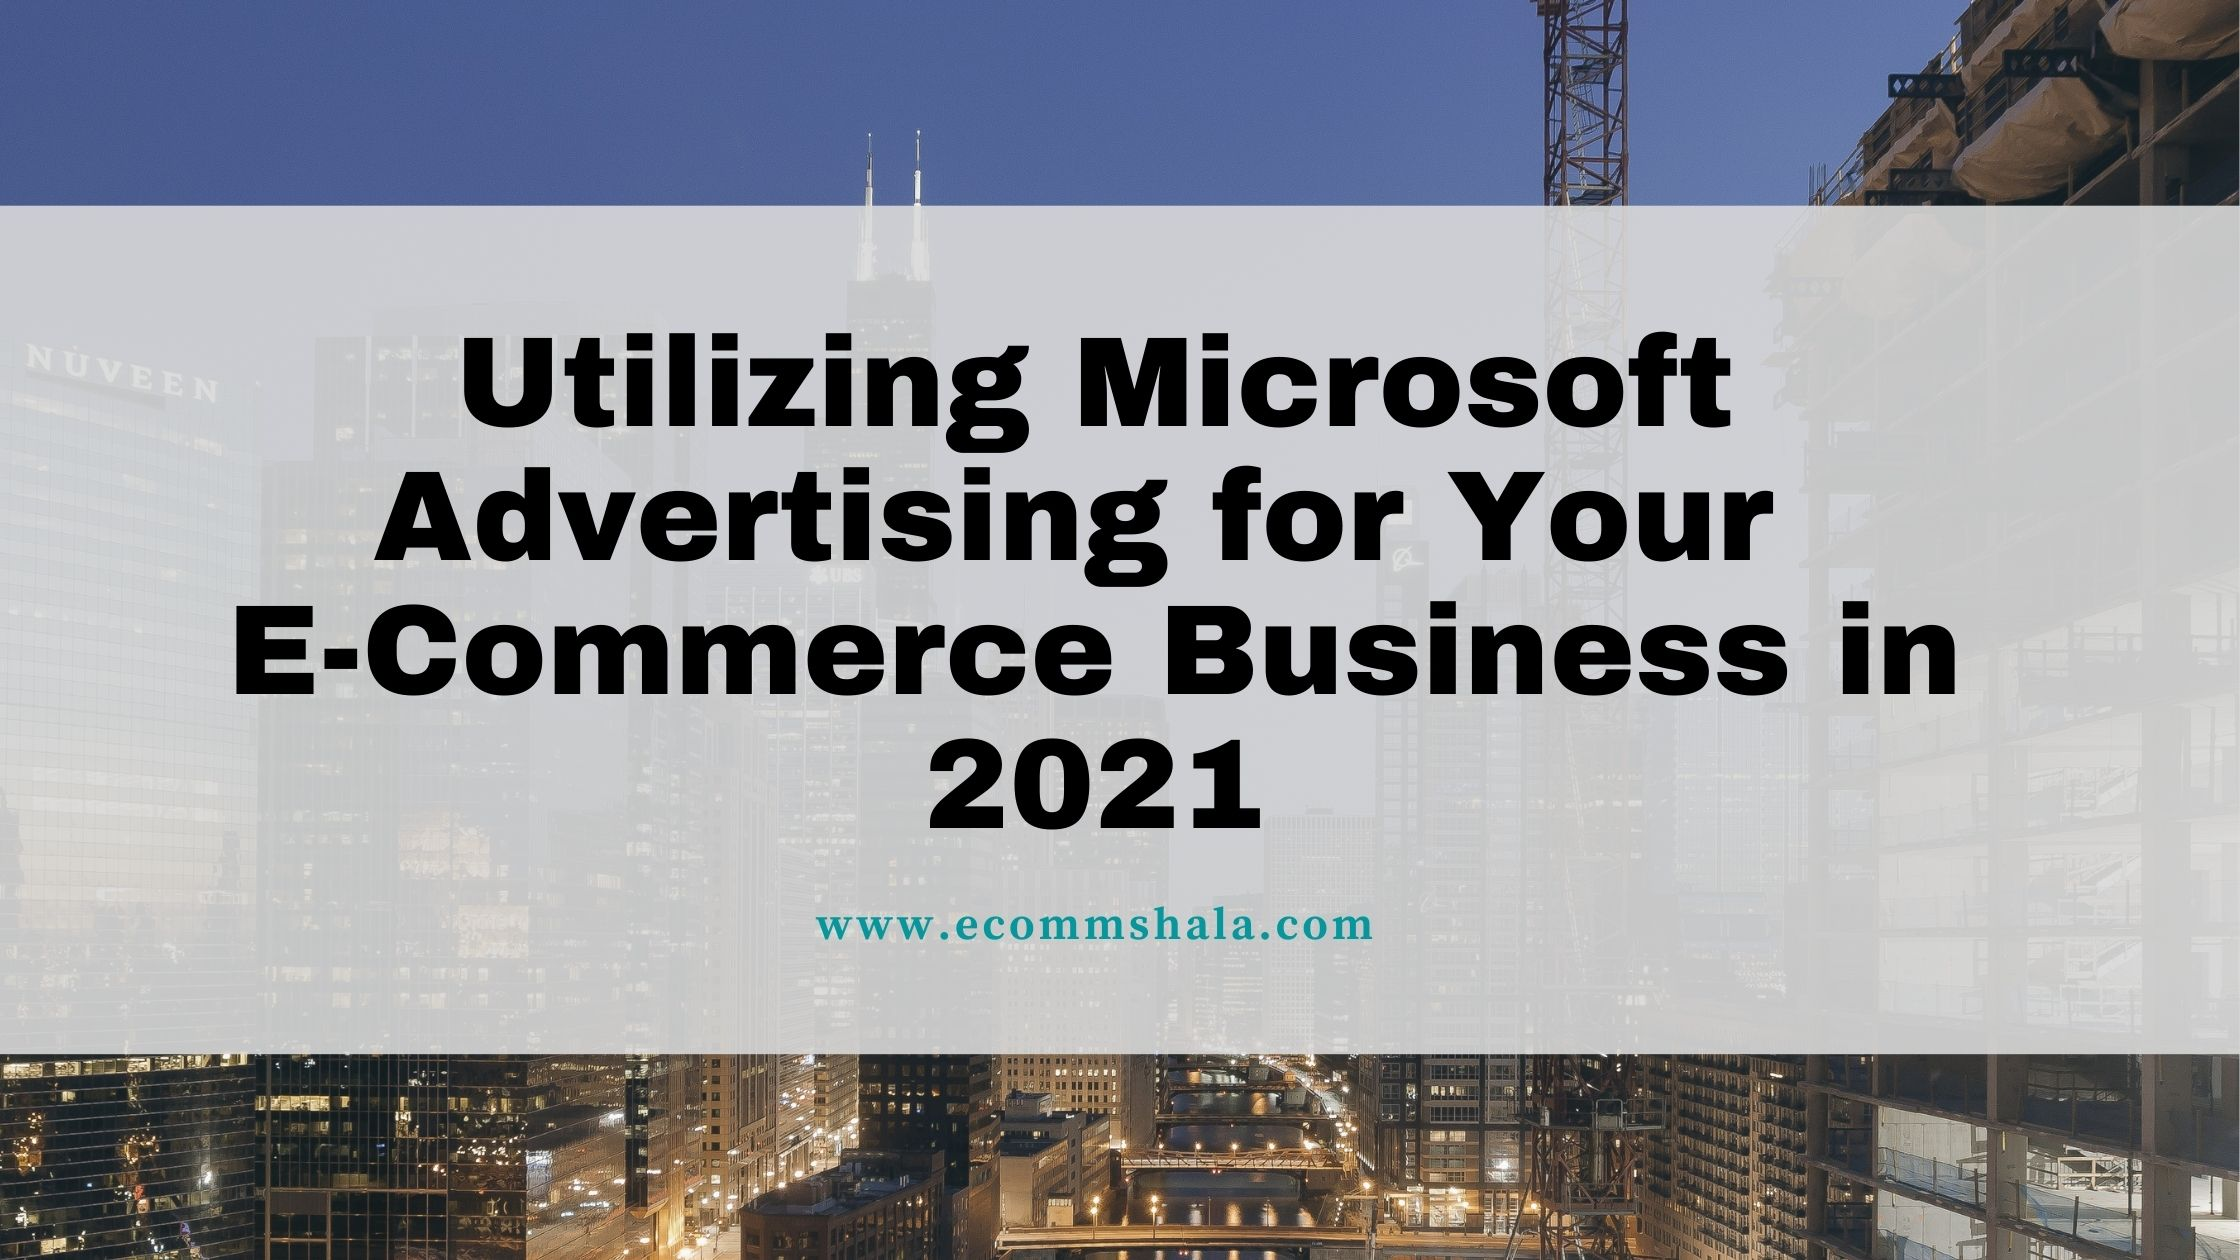 Microsoft Advertising for Your E-Commerce Business